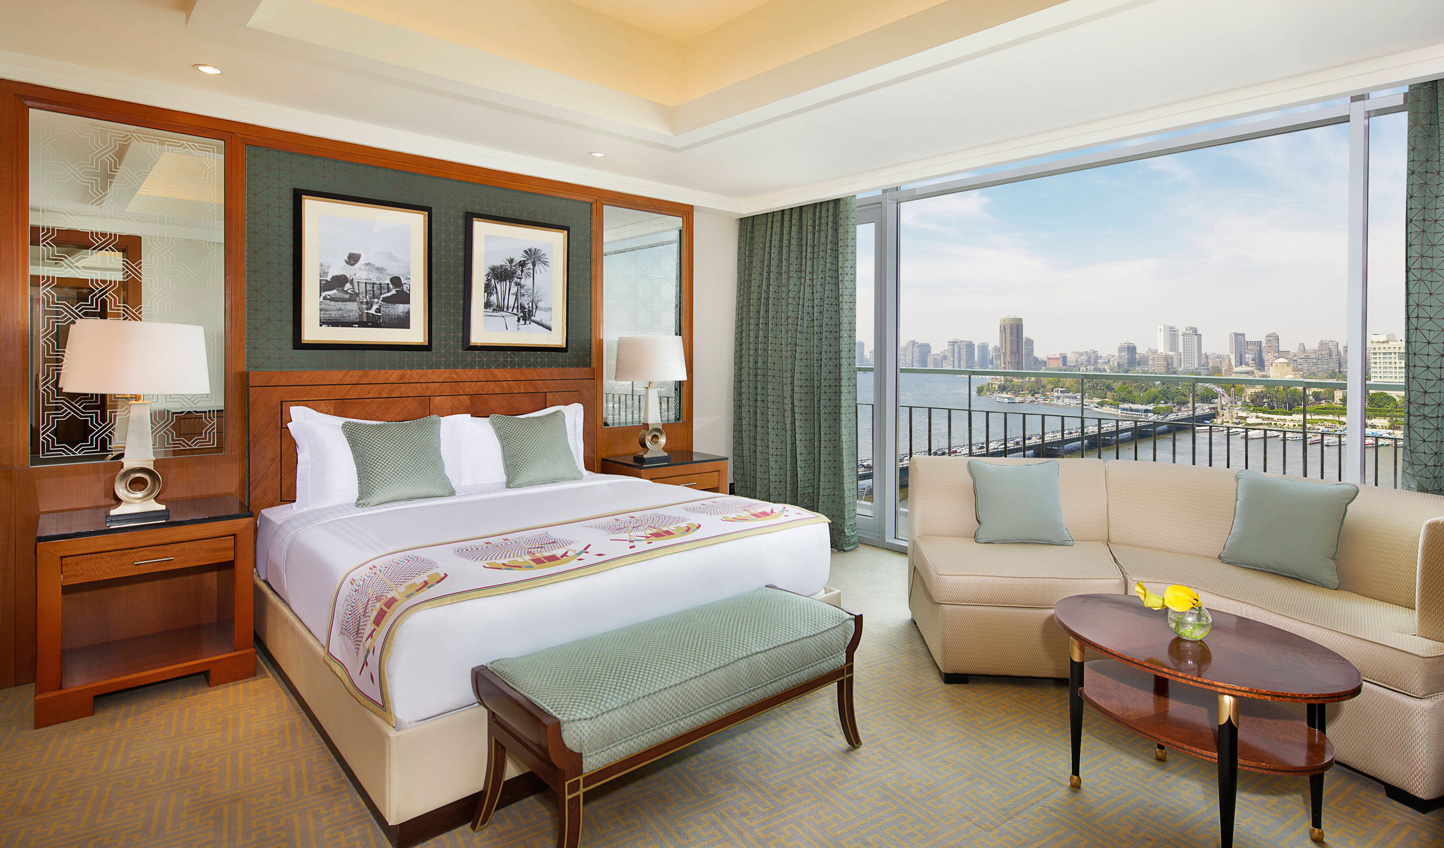 After a day exploring the city, fall pack onto crisp Egyptian sheets atop king-size beds